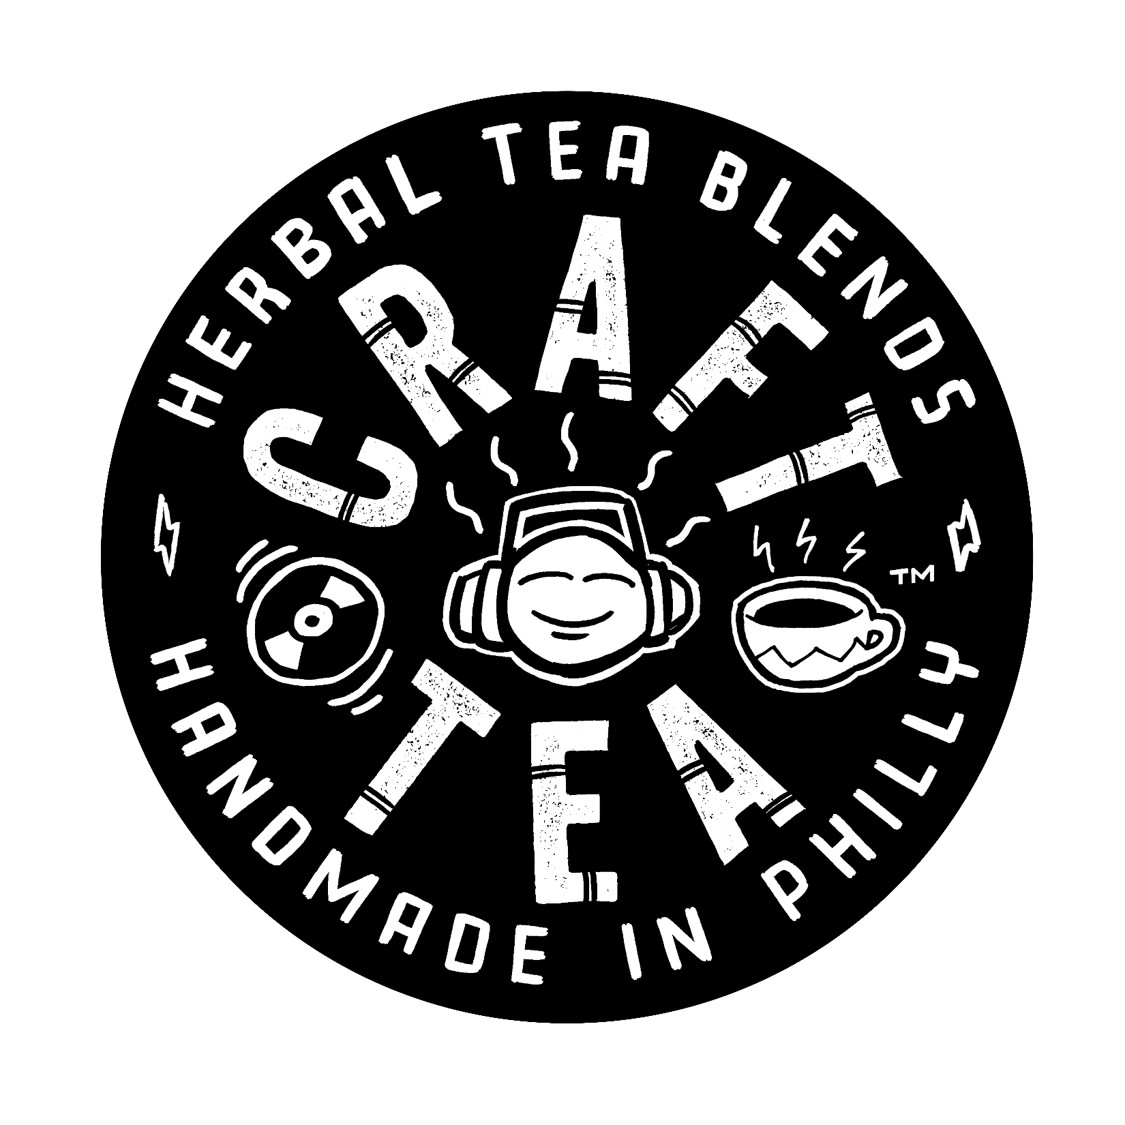 Craft Tea: Herbal Tea Blends Handmade in Philly